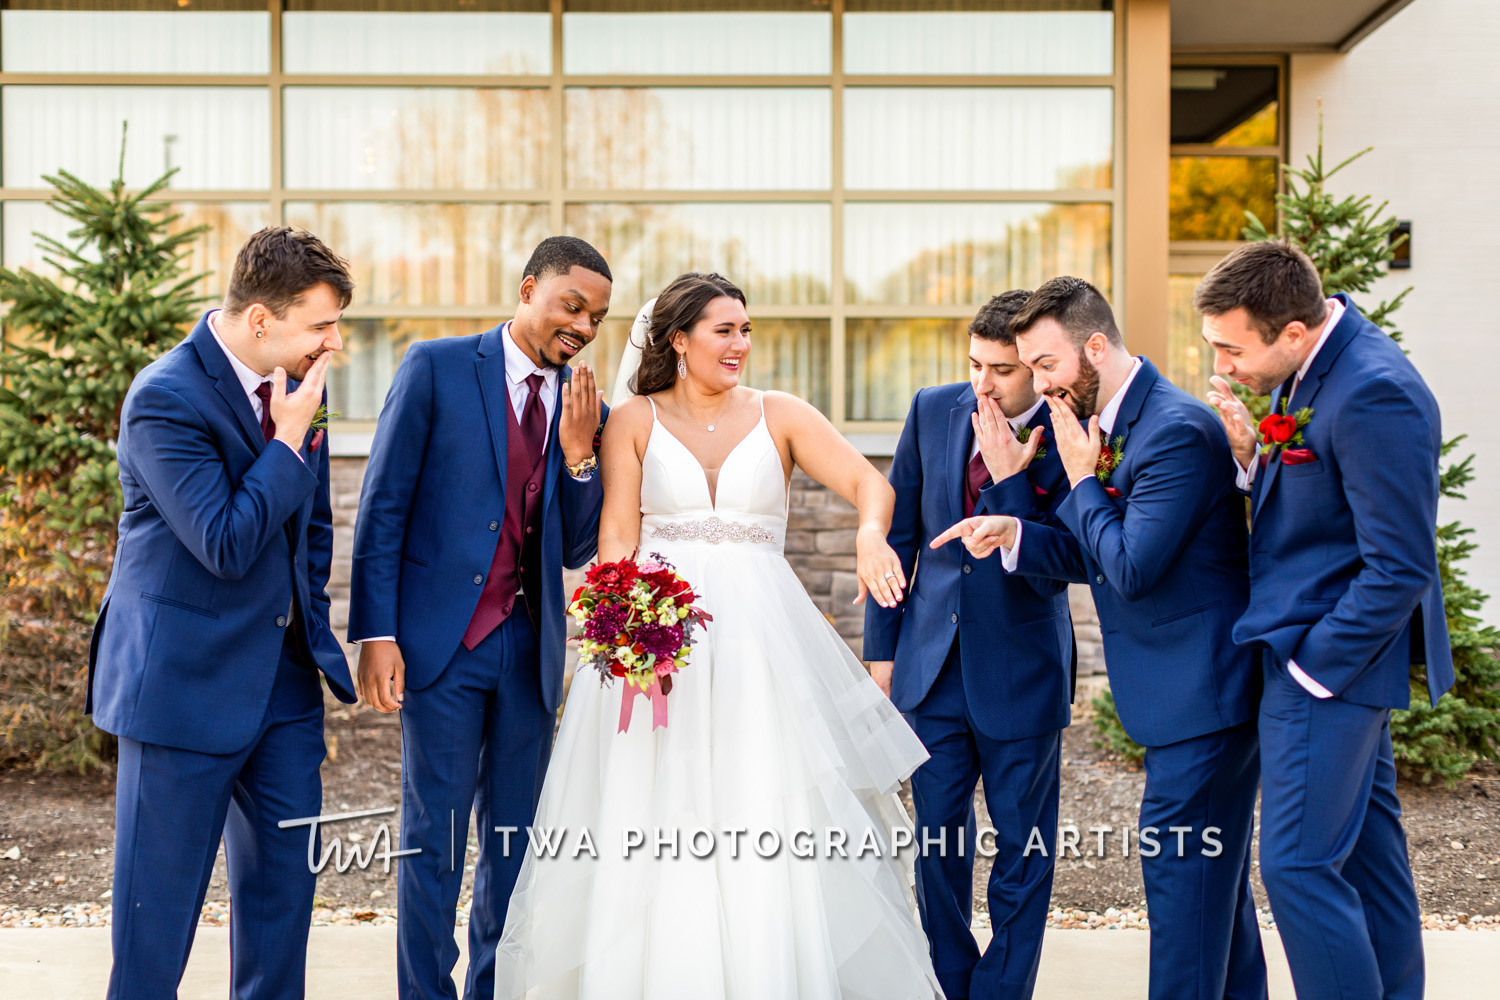 Chicago-Wedding-Photographer-TWA-Photographic-Artists-Avante-Banquets_Zickert_Quaas_MD_SG-0703